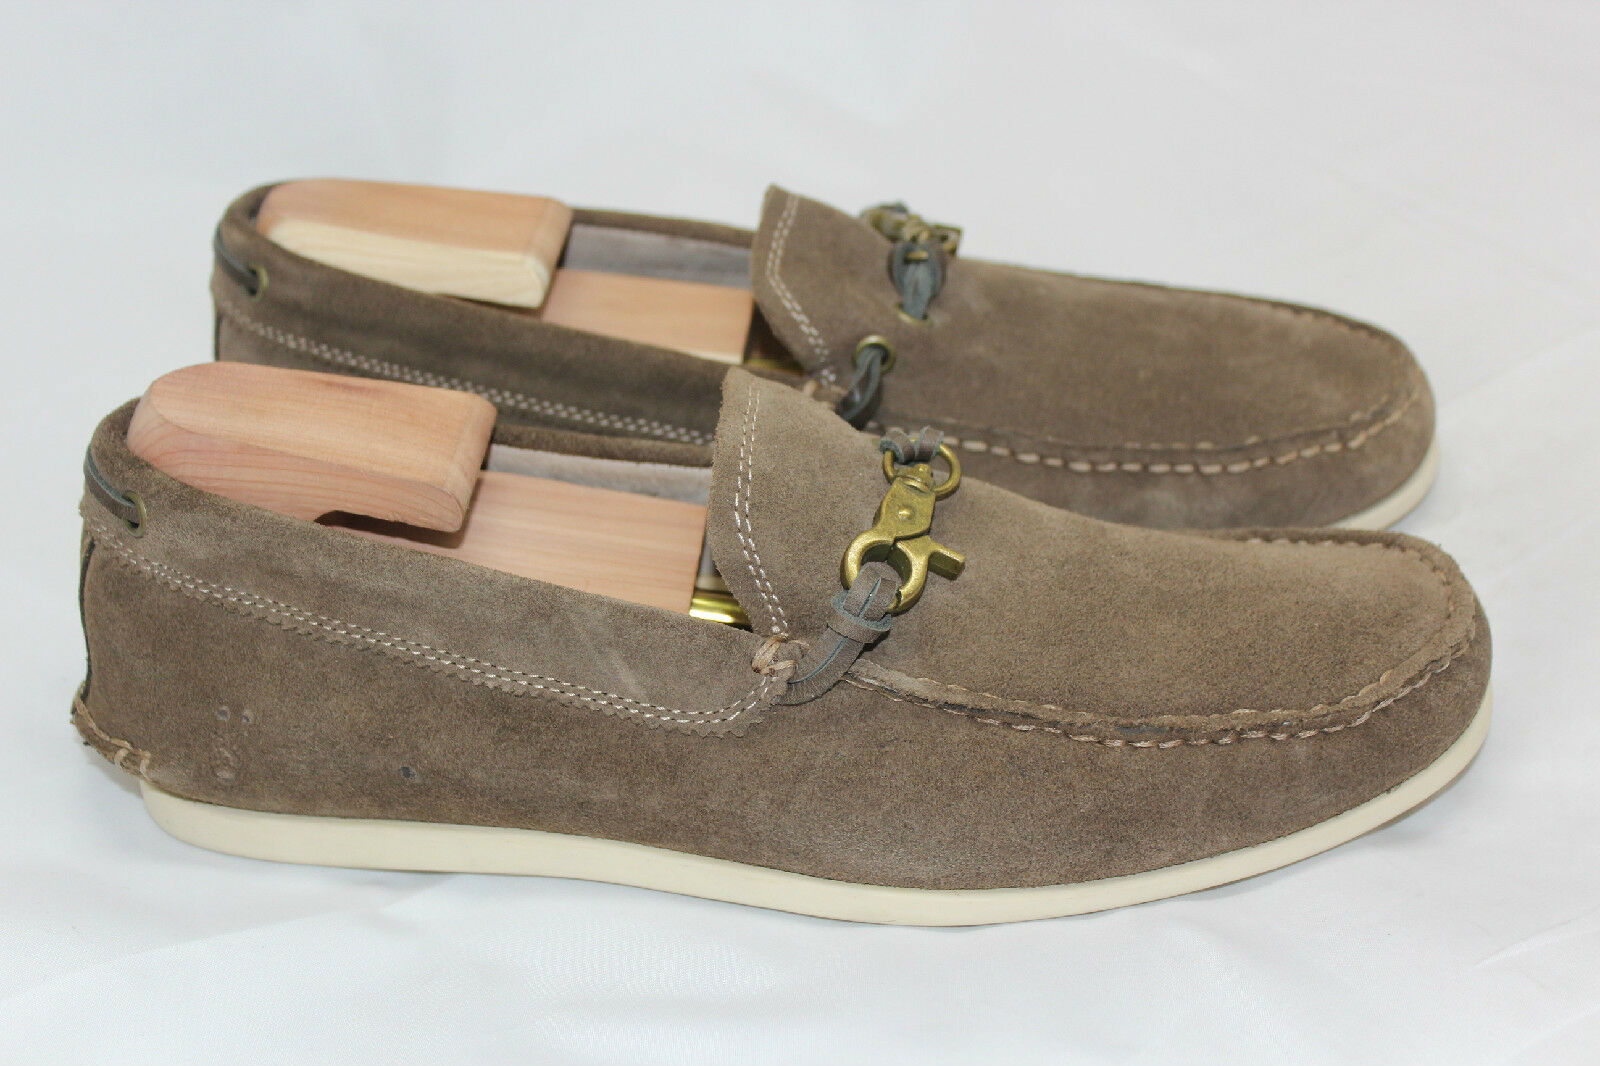 John Varvatos Star USA Boater Dog Clip Moccasin shoes - 8 M - Brown Clay (Q24)